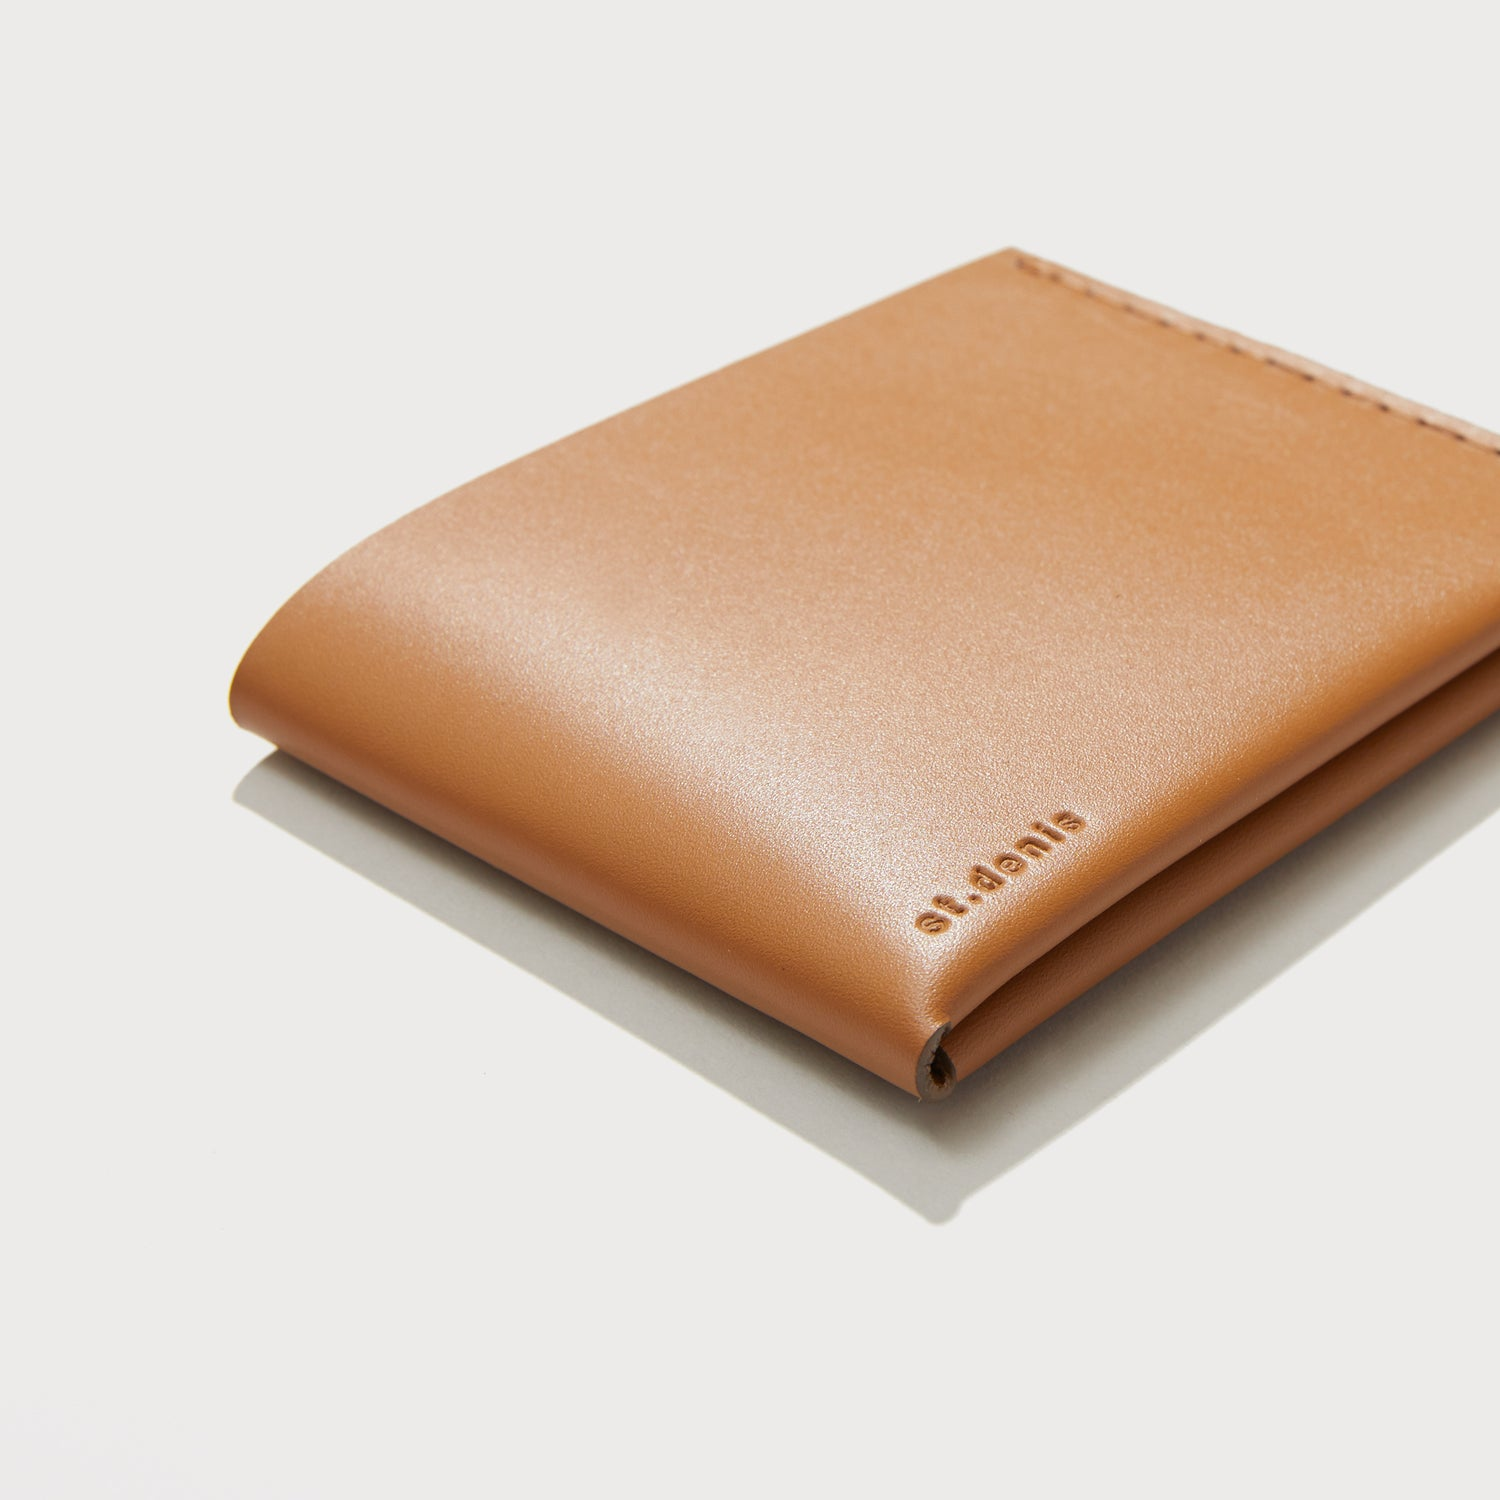 Sold out<br>Portefeuille bifold Couleur cognac